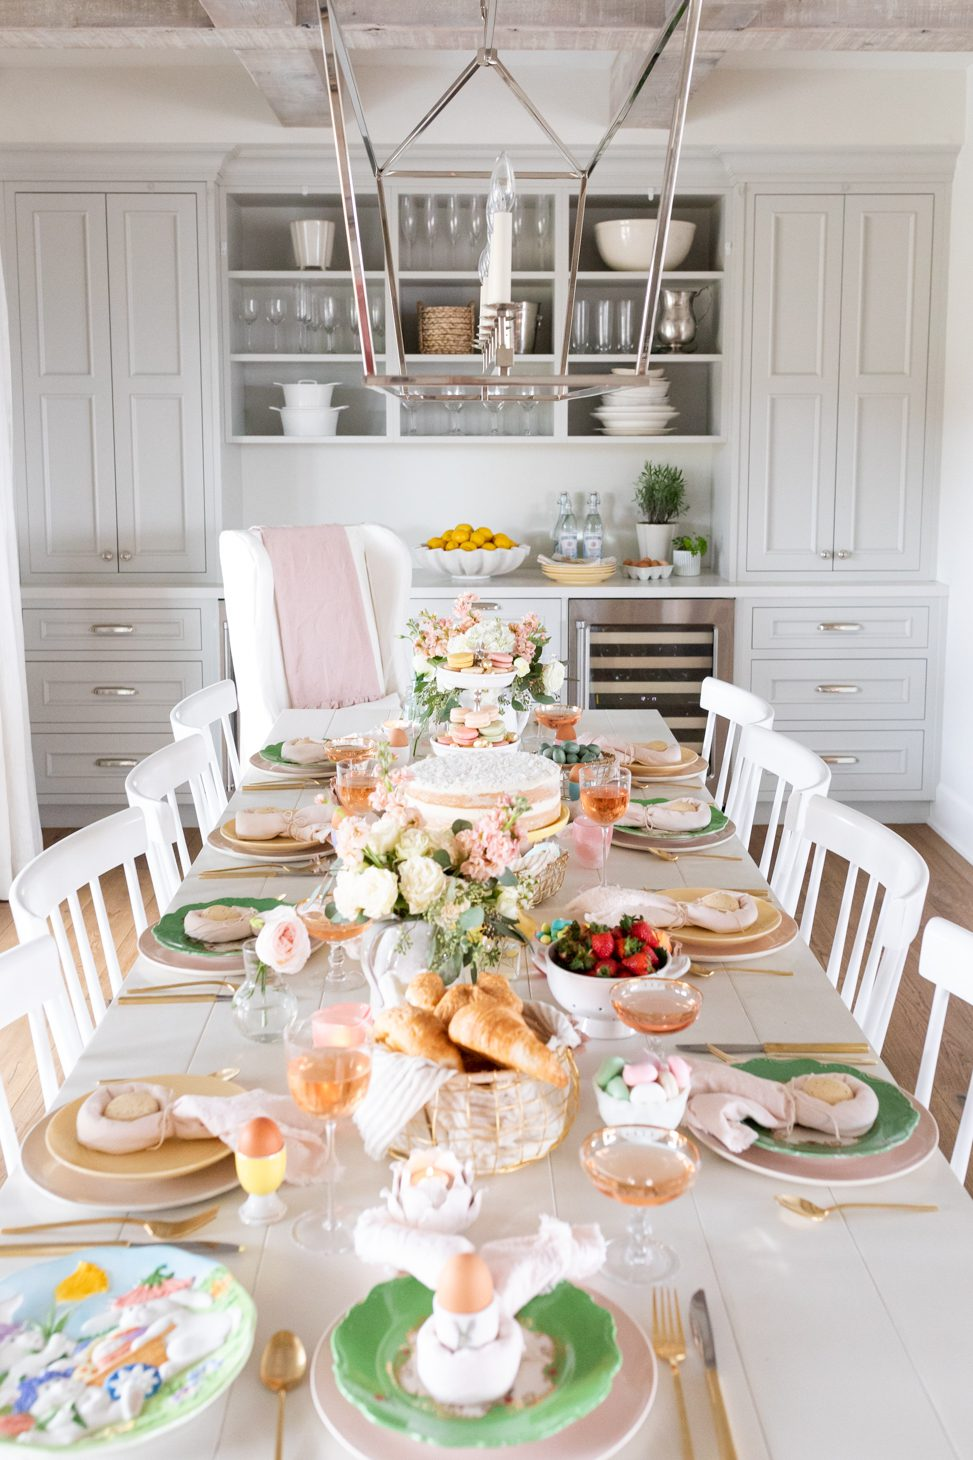 Prep your table before Easter